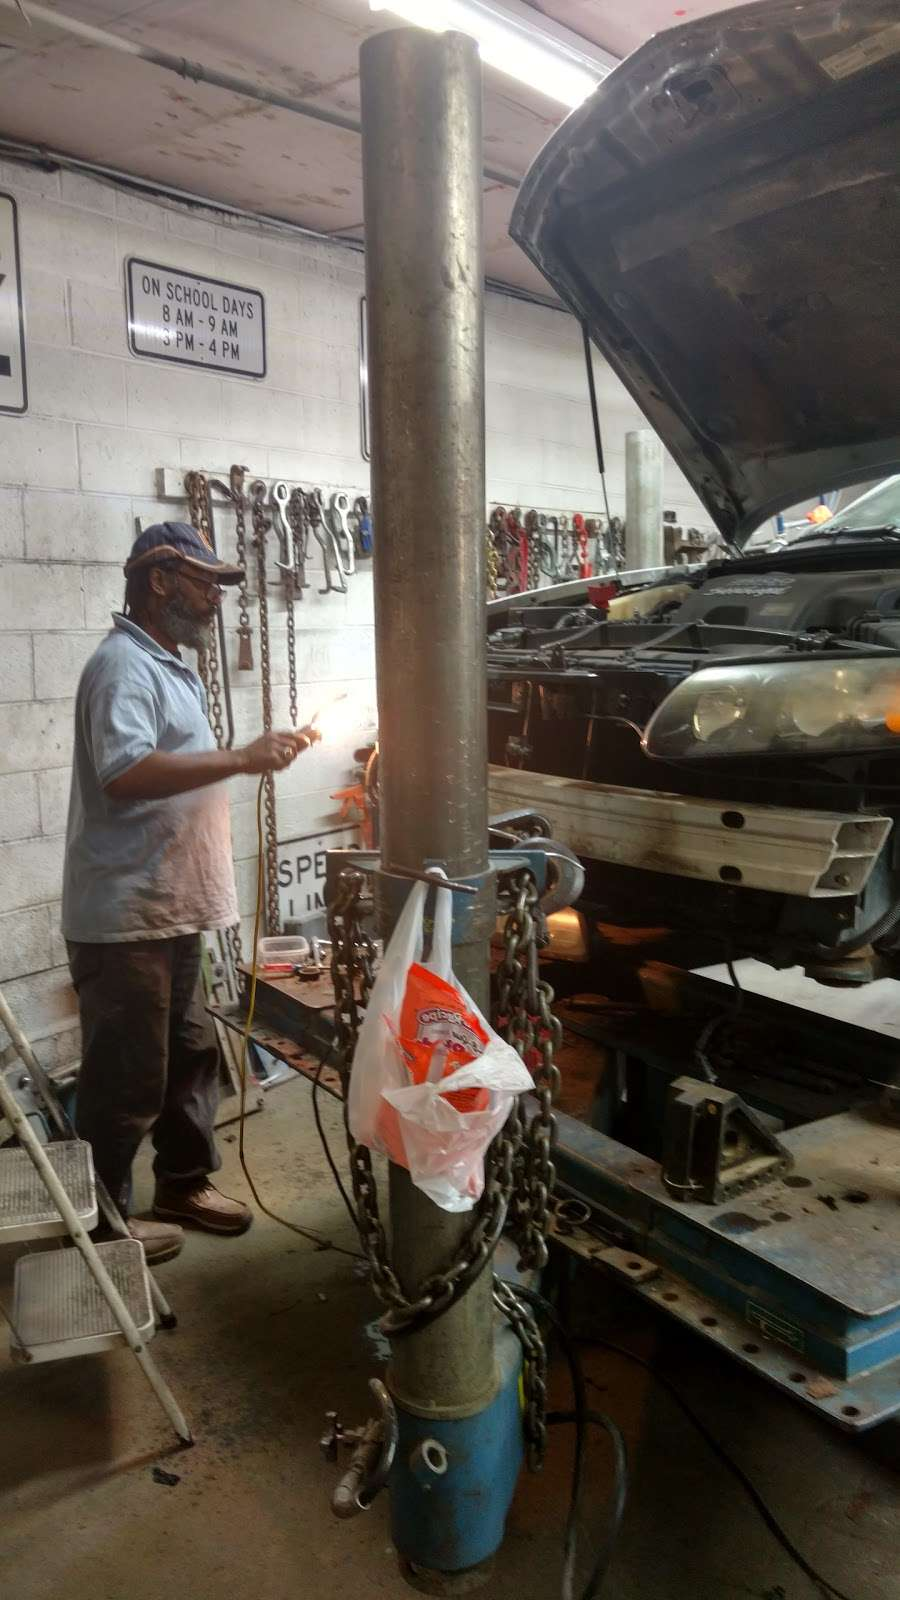 Lil Logans Collision - car repair    Photo 10 of 10   Address: 11815 S Halsted St, Chicago, IL 60628, USA   Phone: (773) 785-7425